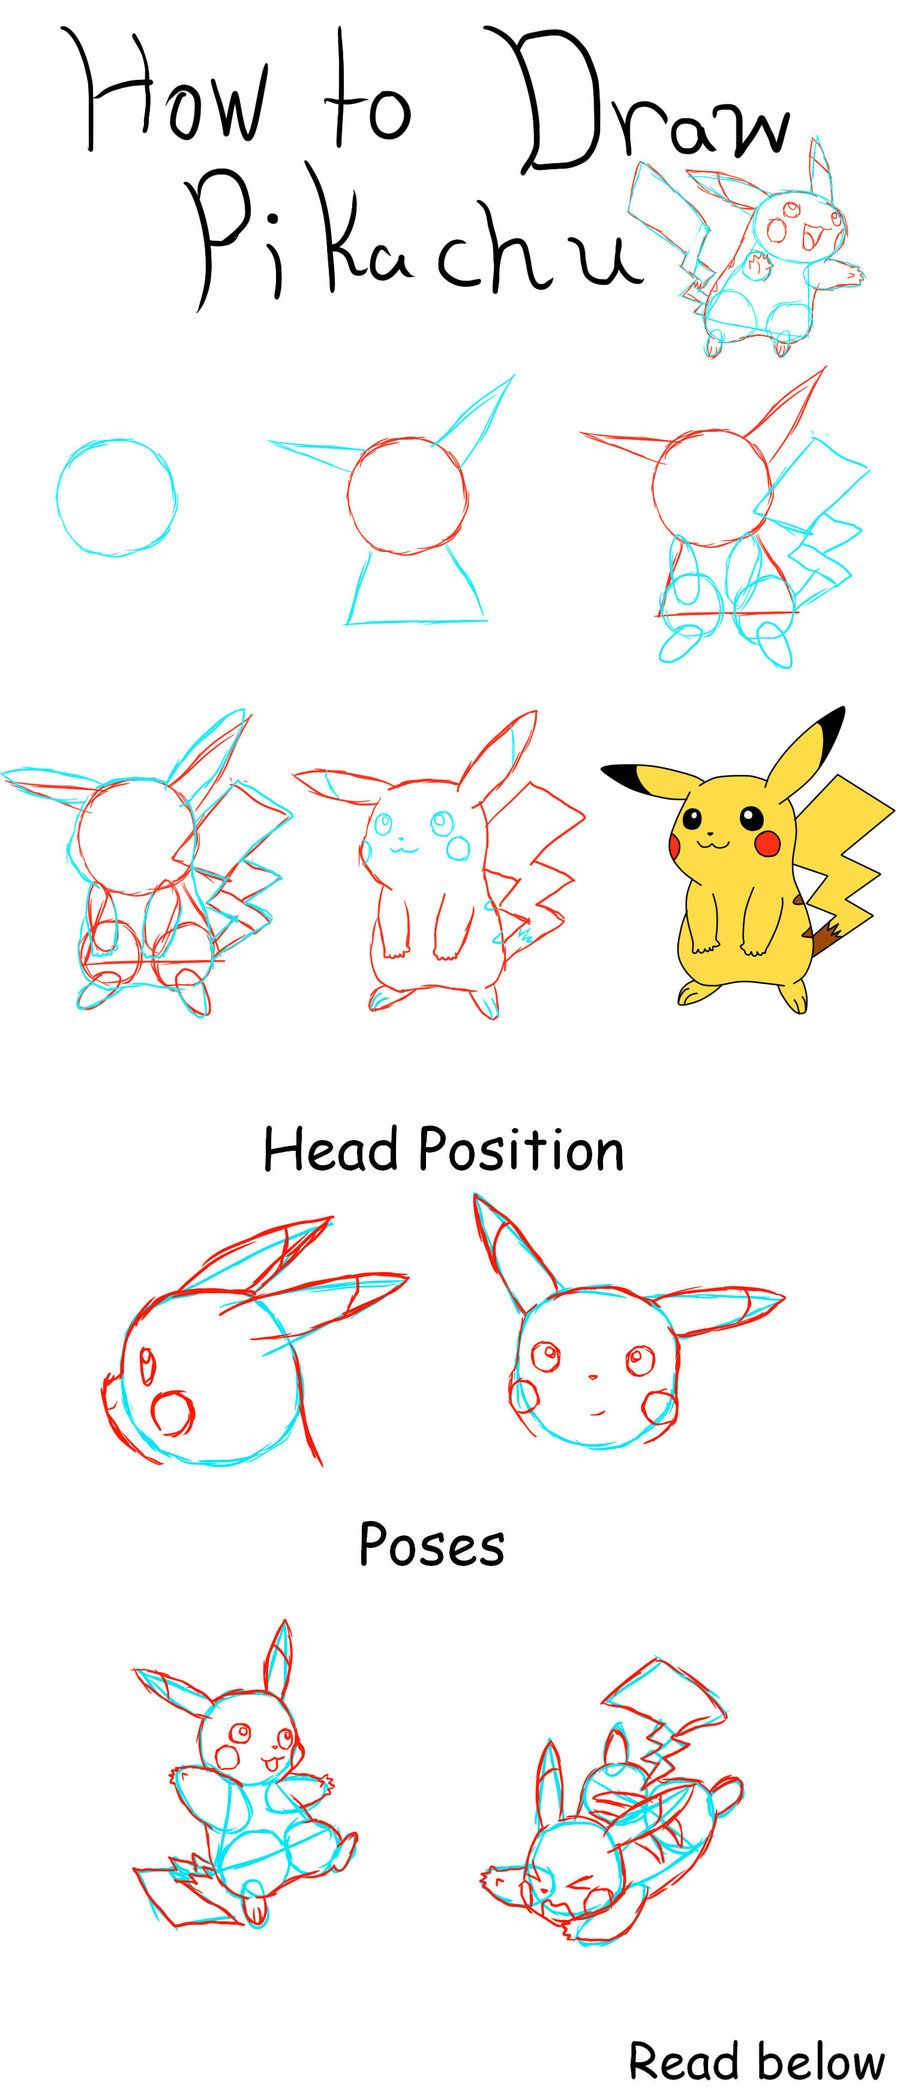 How To Draw Pikachu Pokemon Drawings Pikachu Drawing Drawings